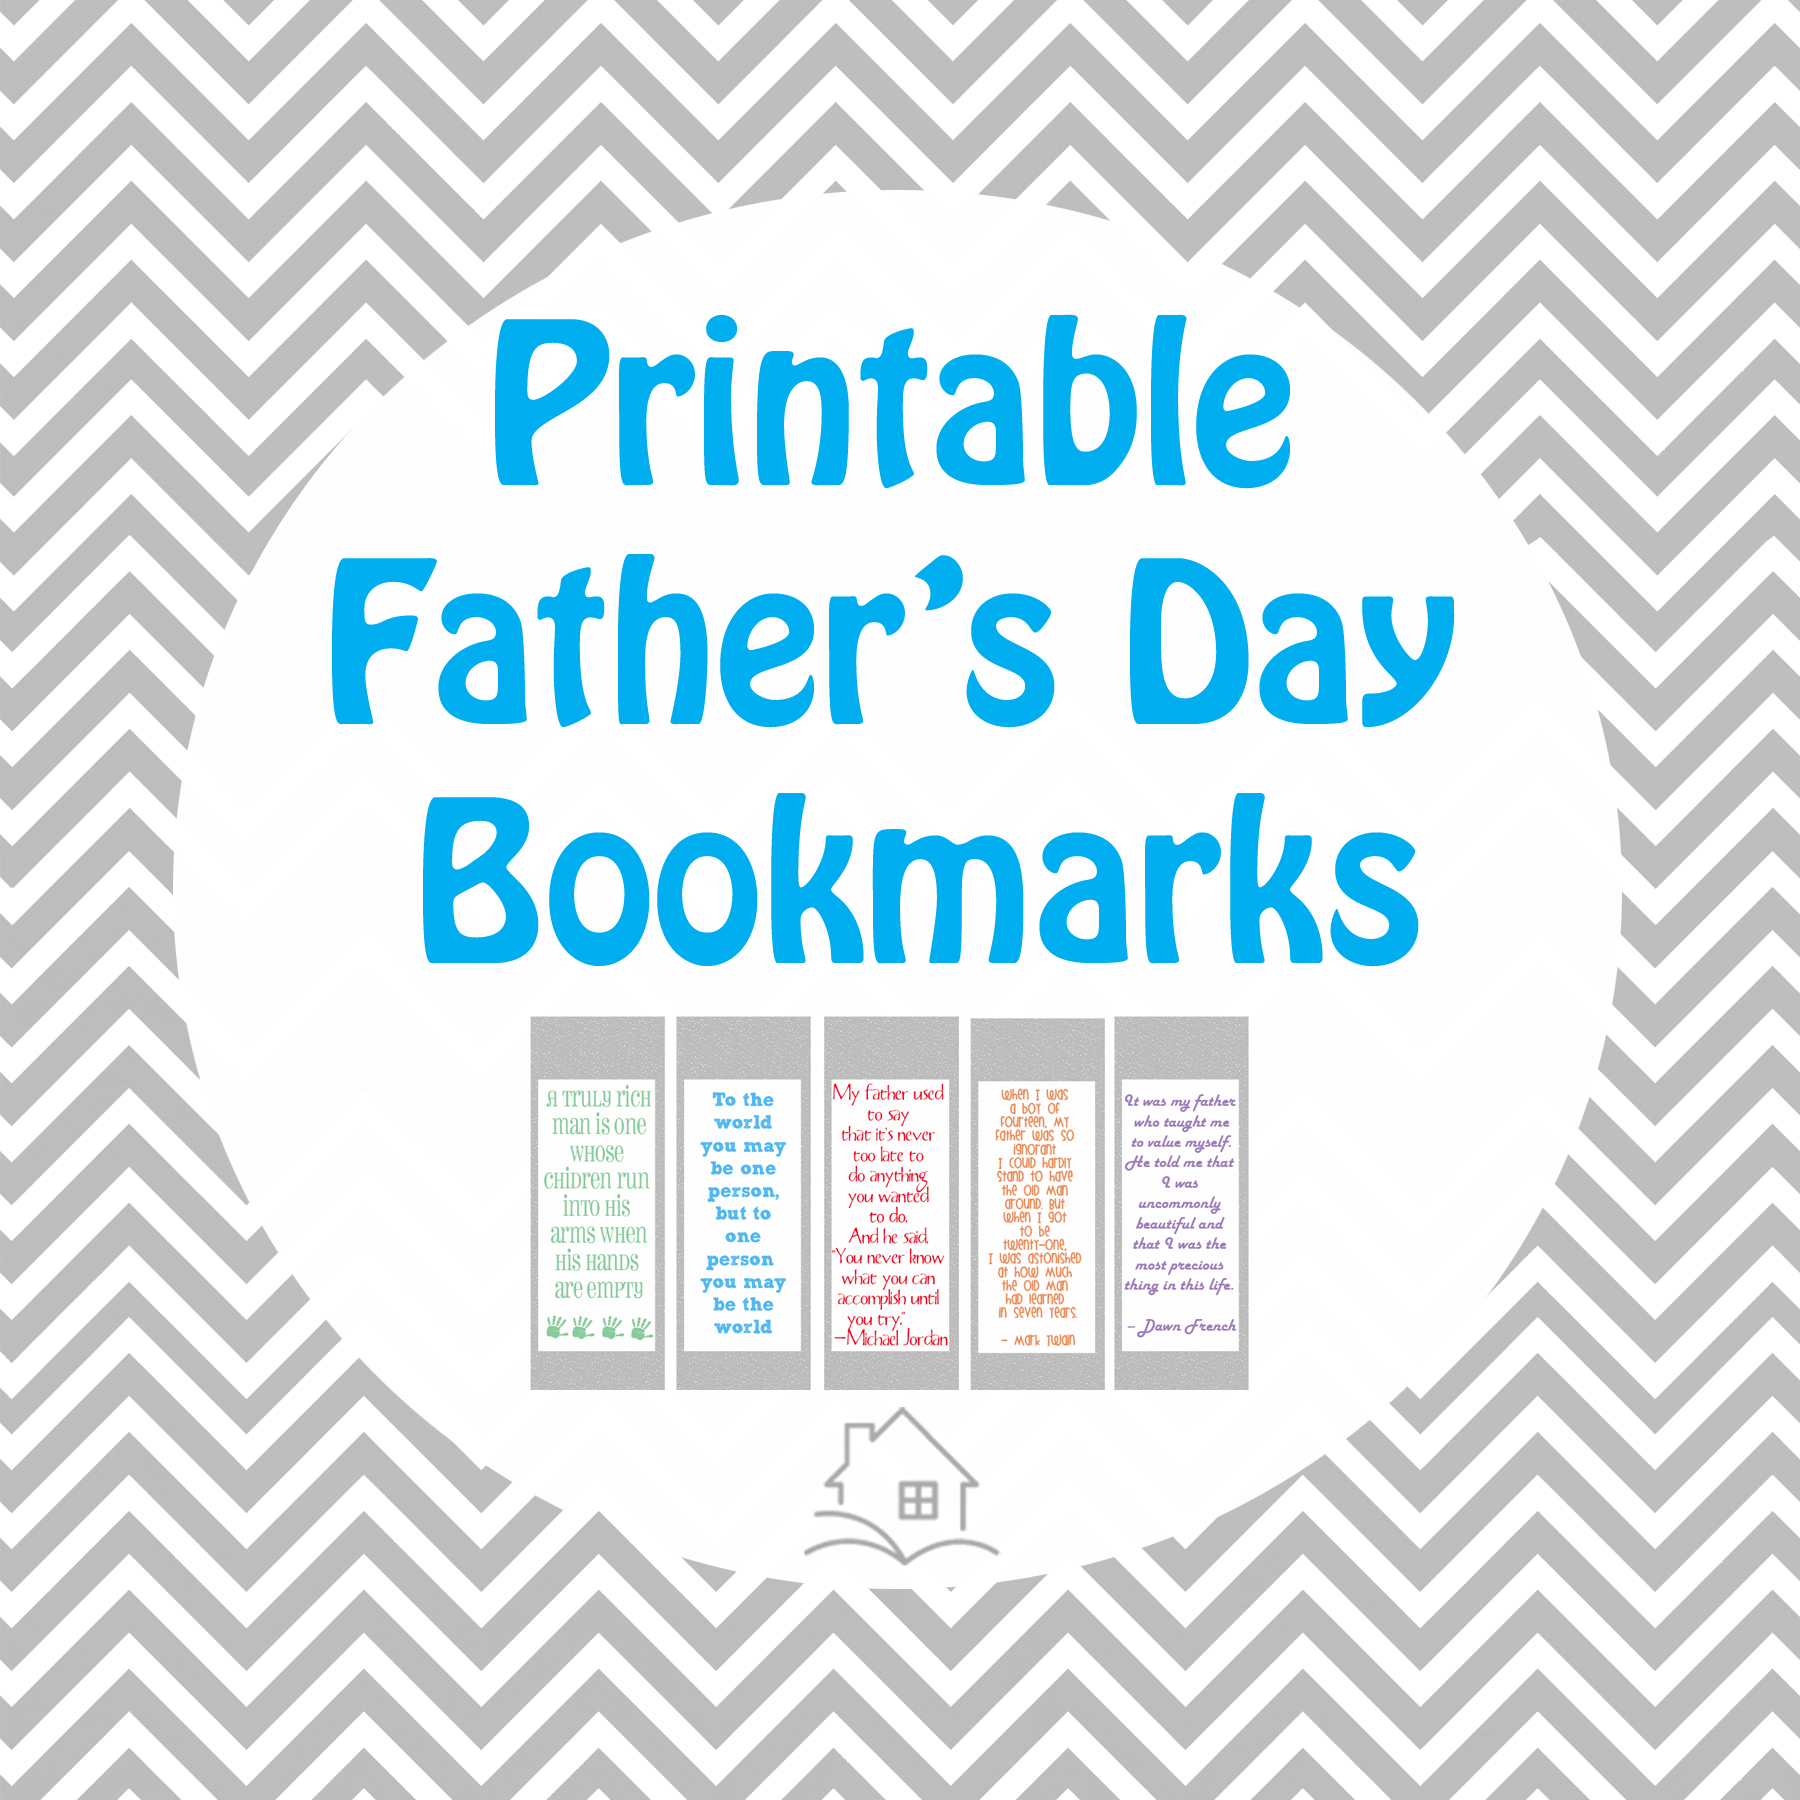 Fathers who love to read - plus free Father's Day